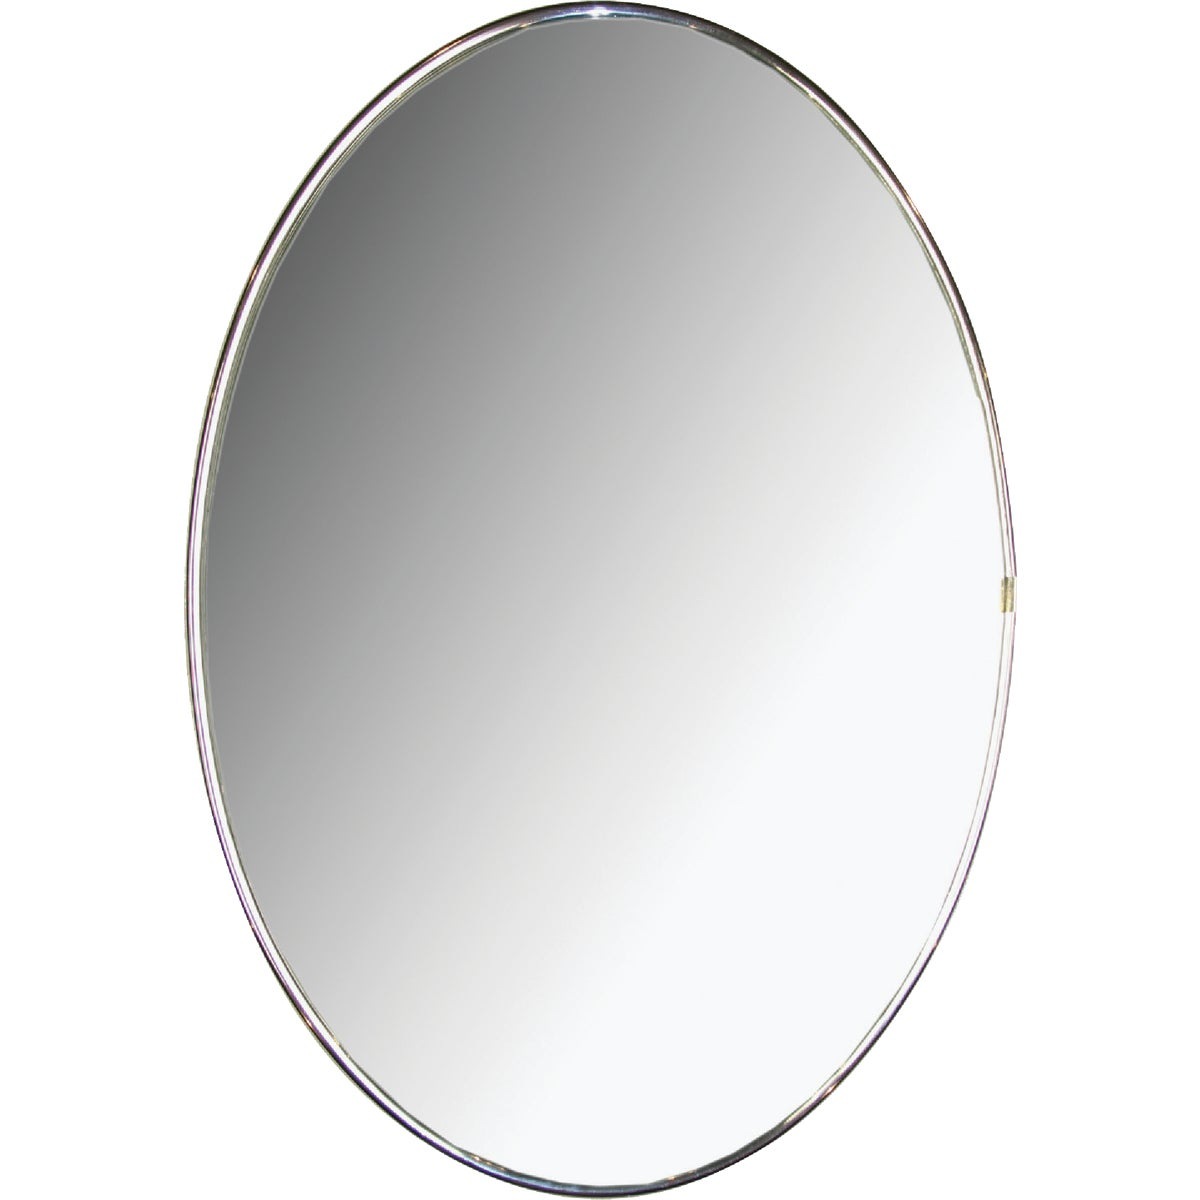 ELMVALE OVAL WALL MIRROR